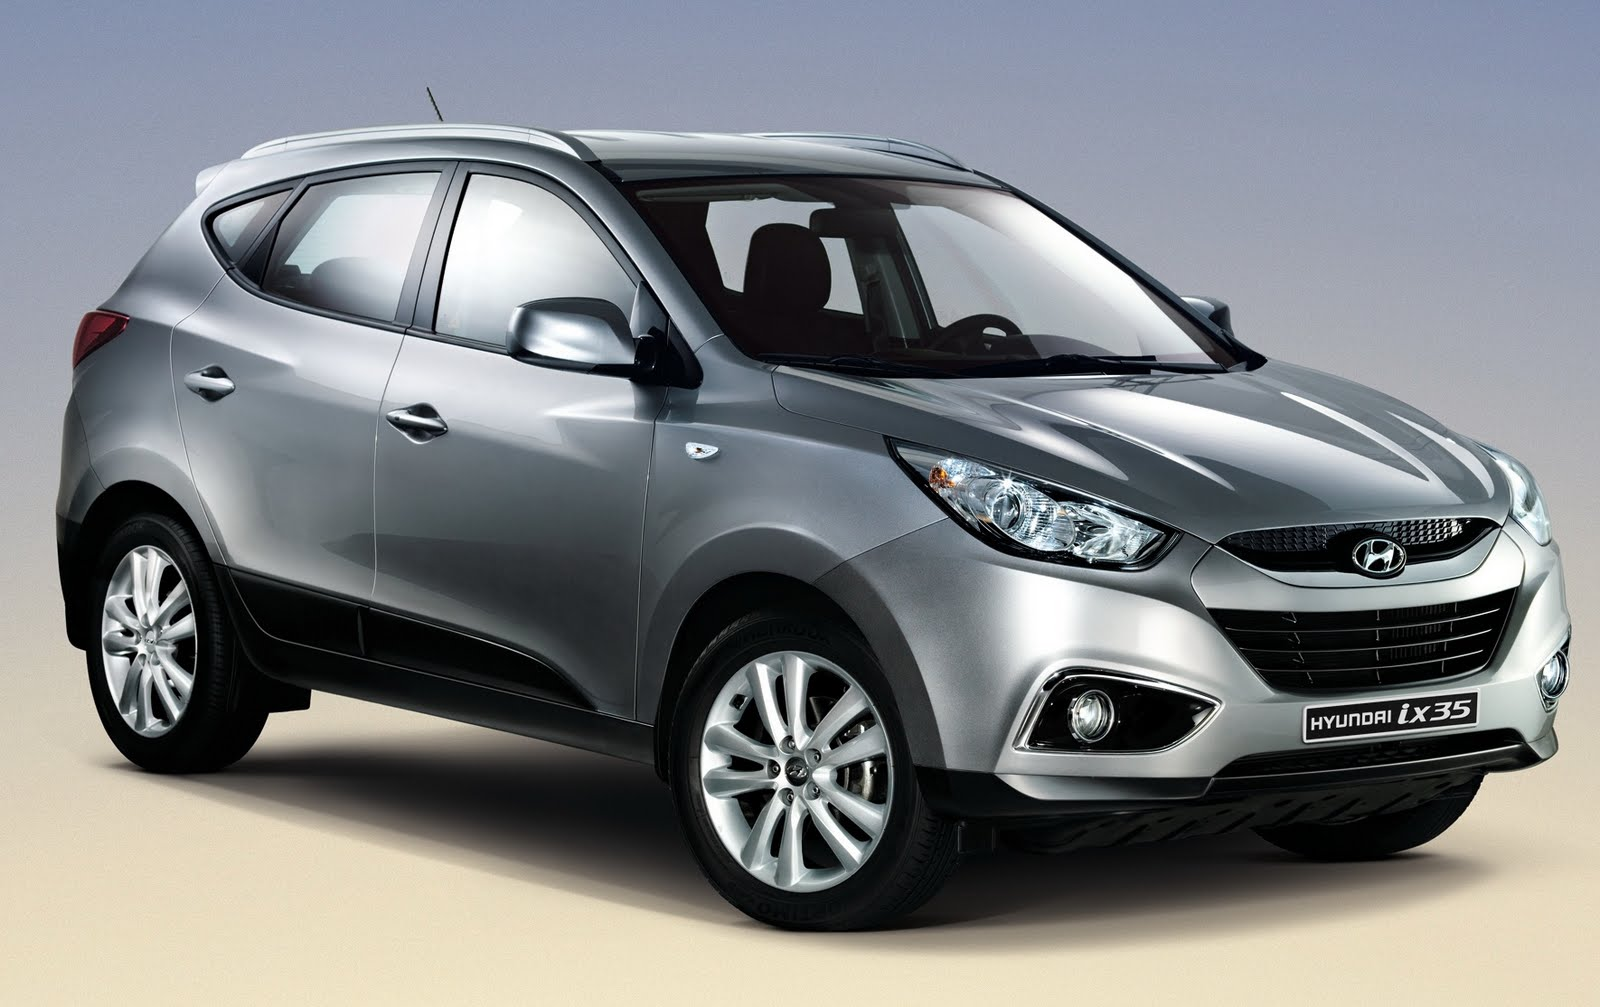 hyundai ix35 tucson. Black Bedroom Furniture Sets. Home Design Ideas